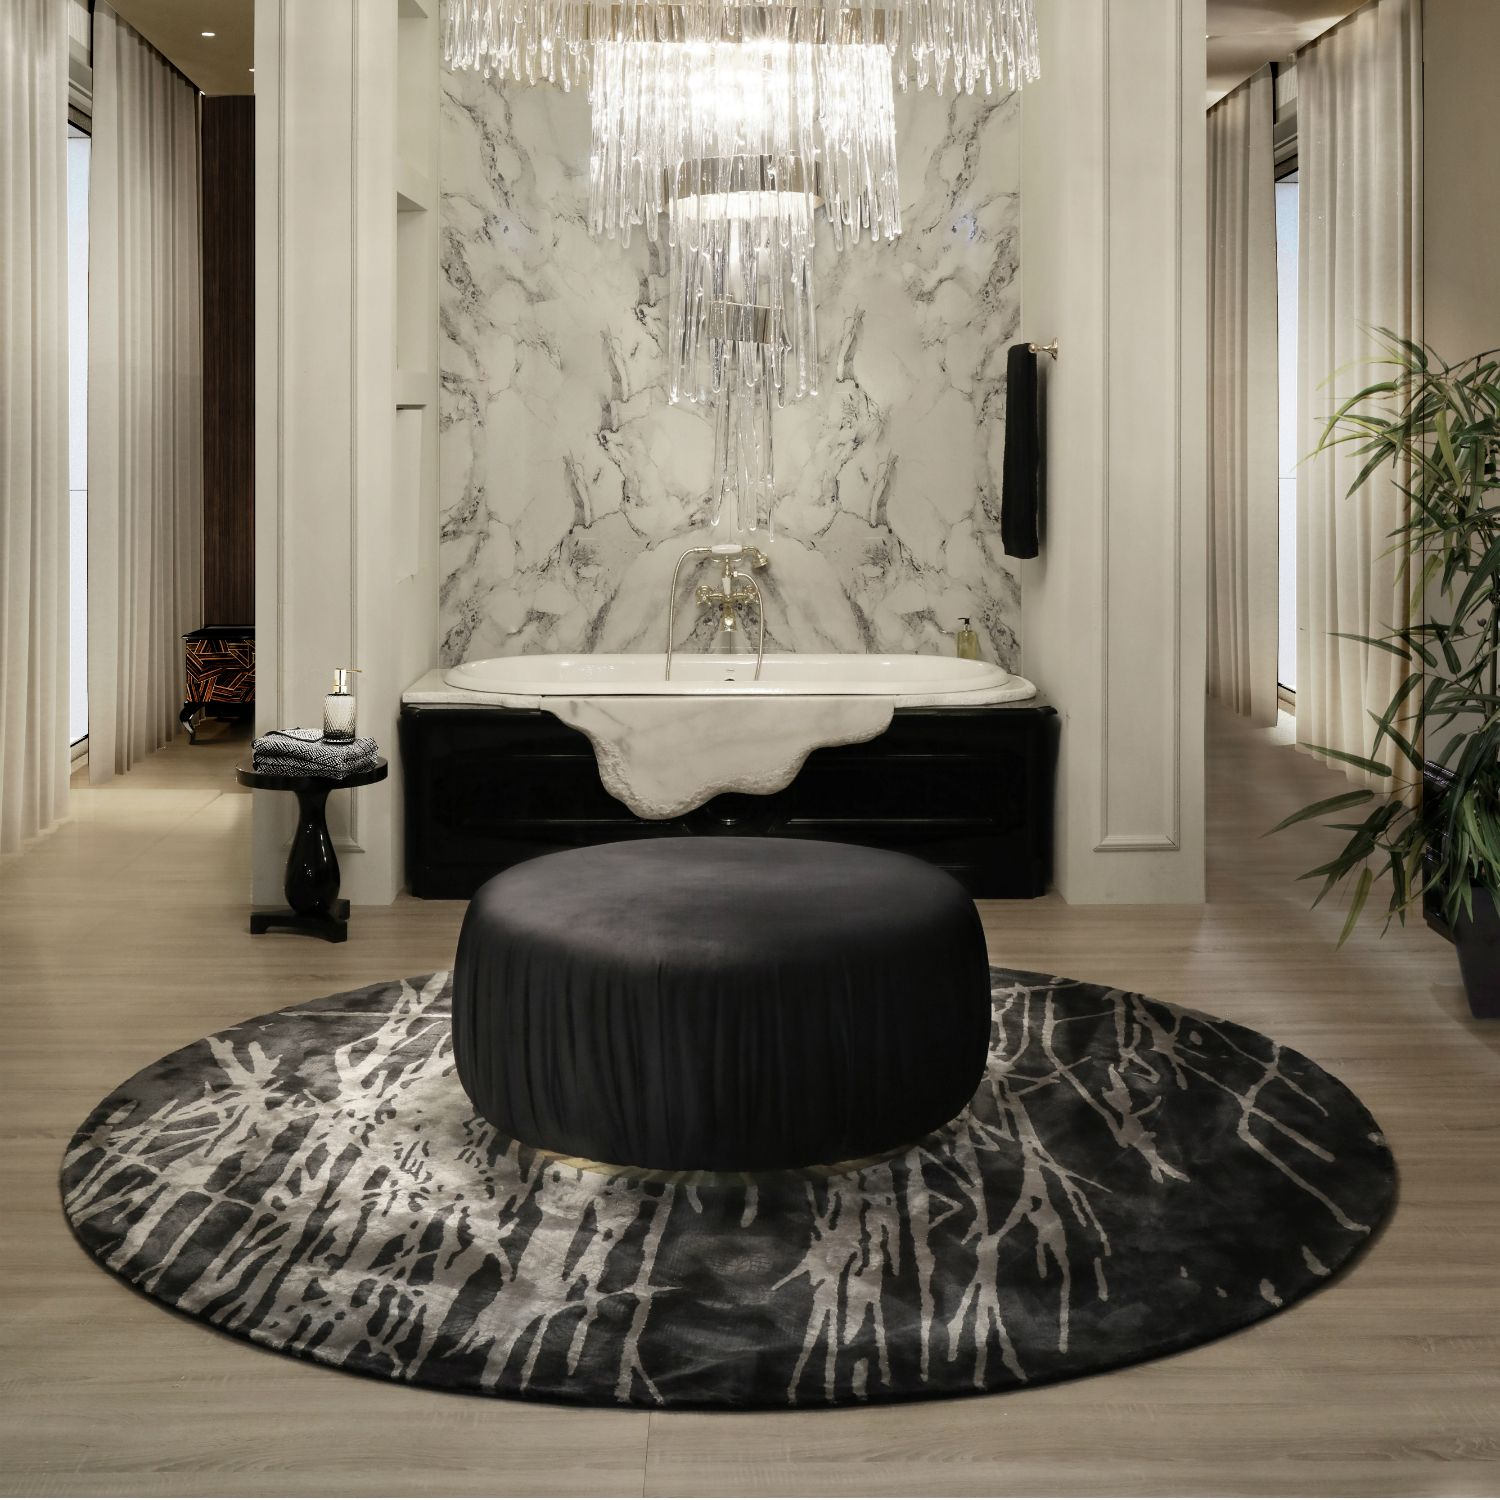 Find out why home decor is always essential Discover more luxury